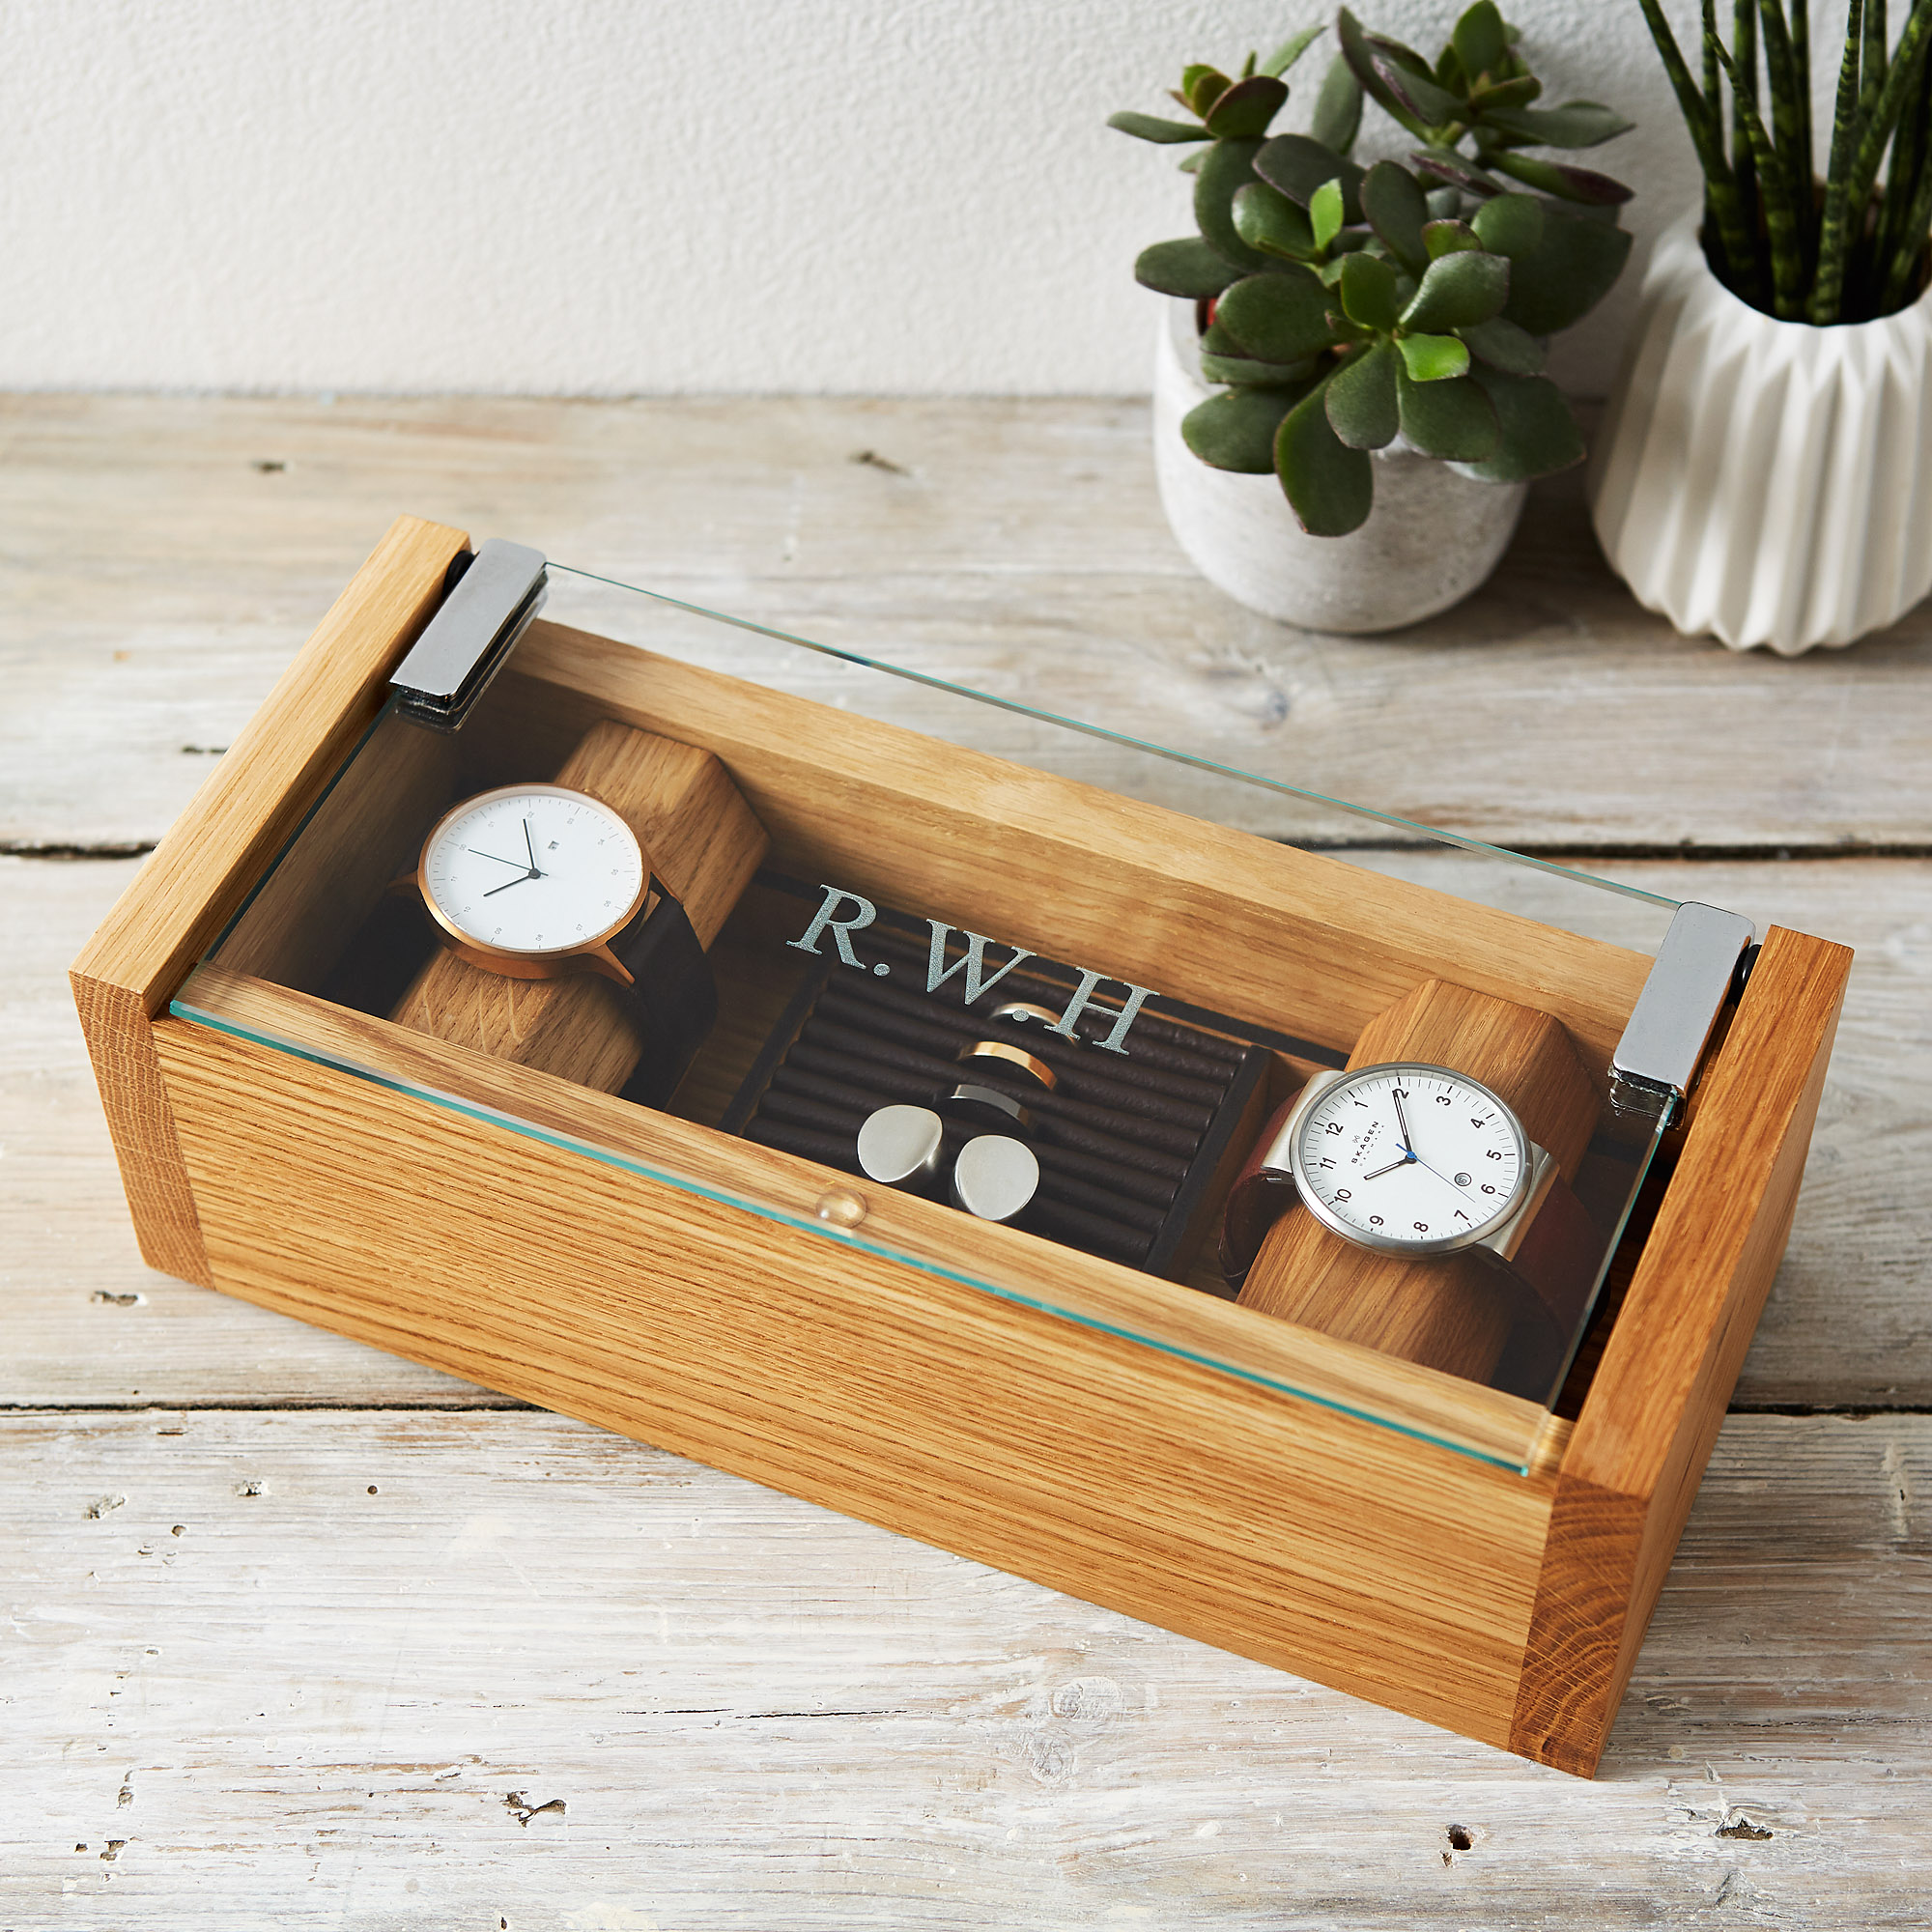 Select Gifts On//Off Cufflinks Optional Engraved Personalised Box